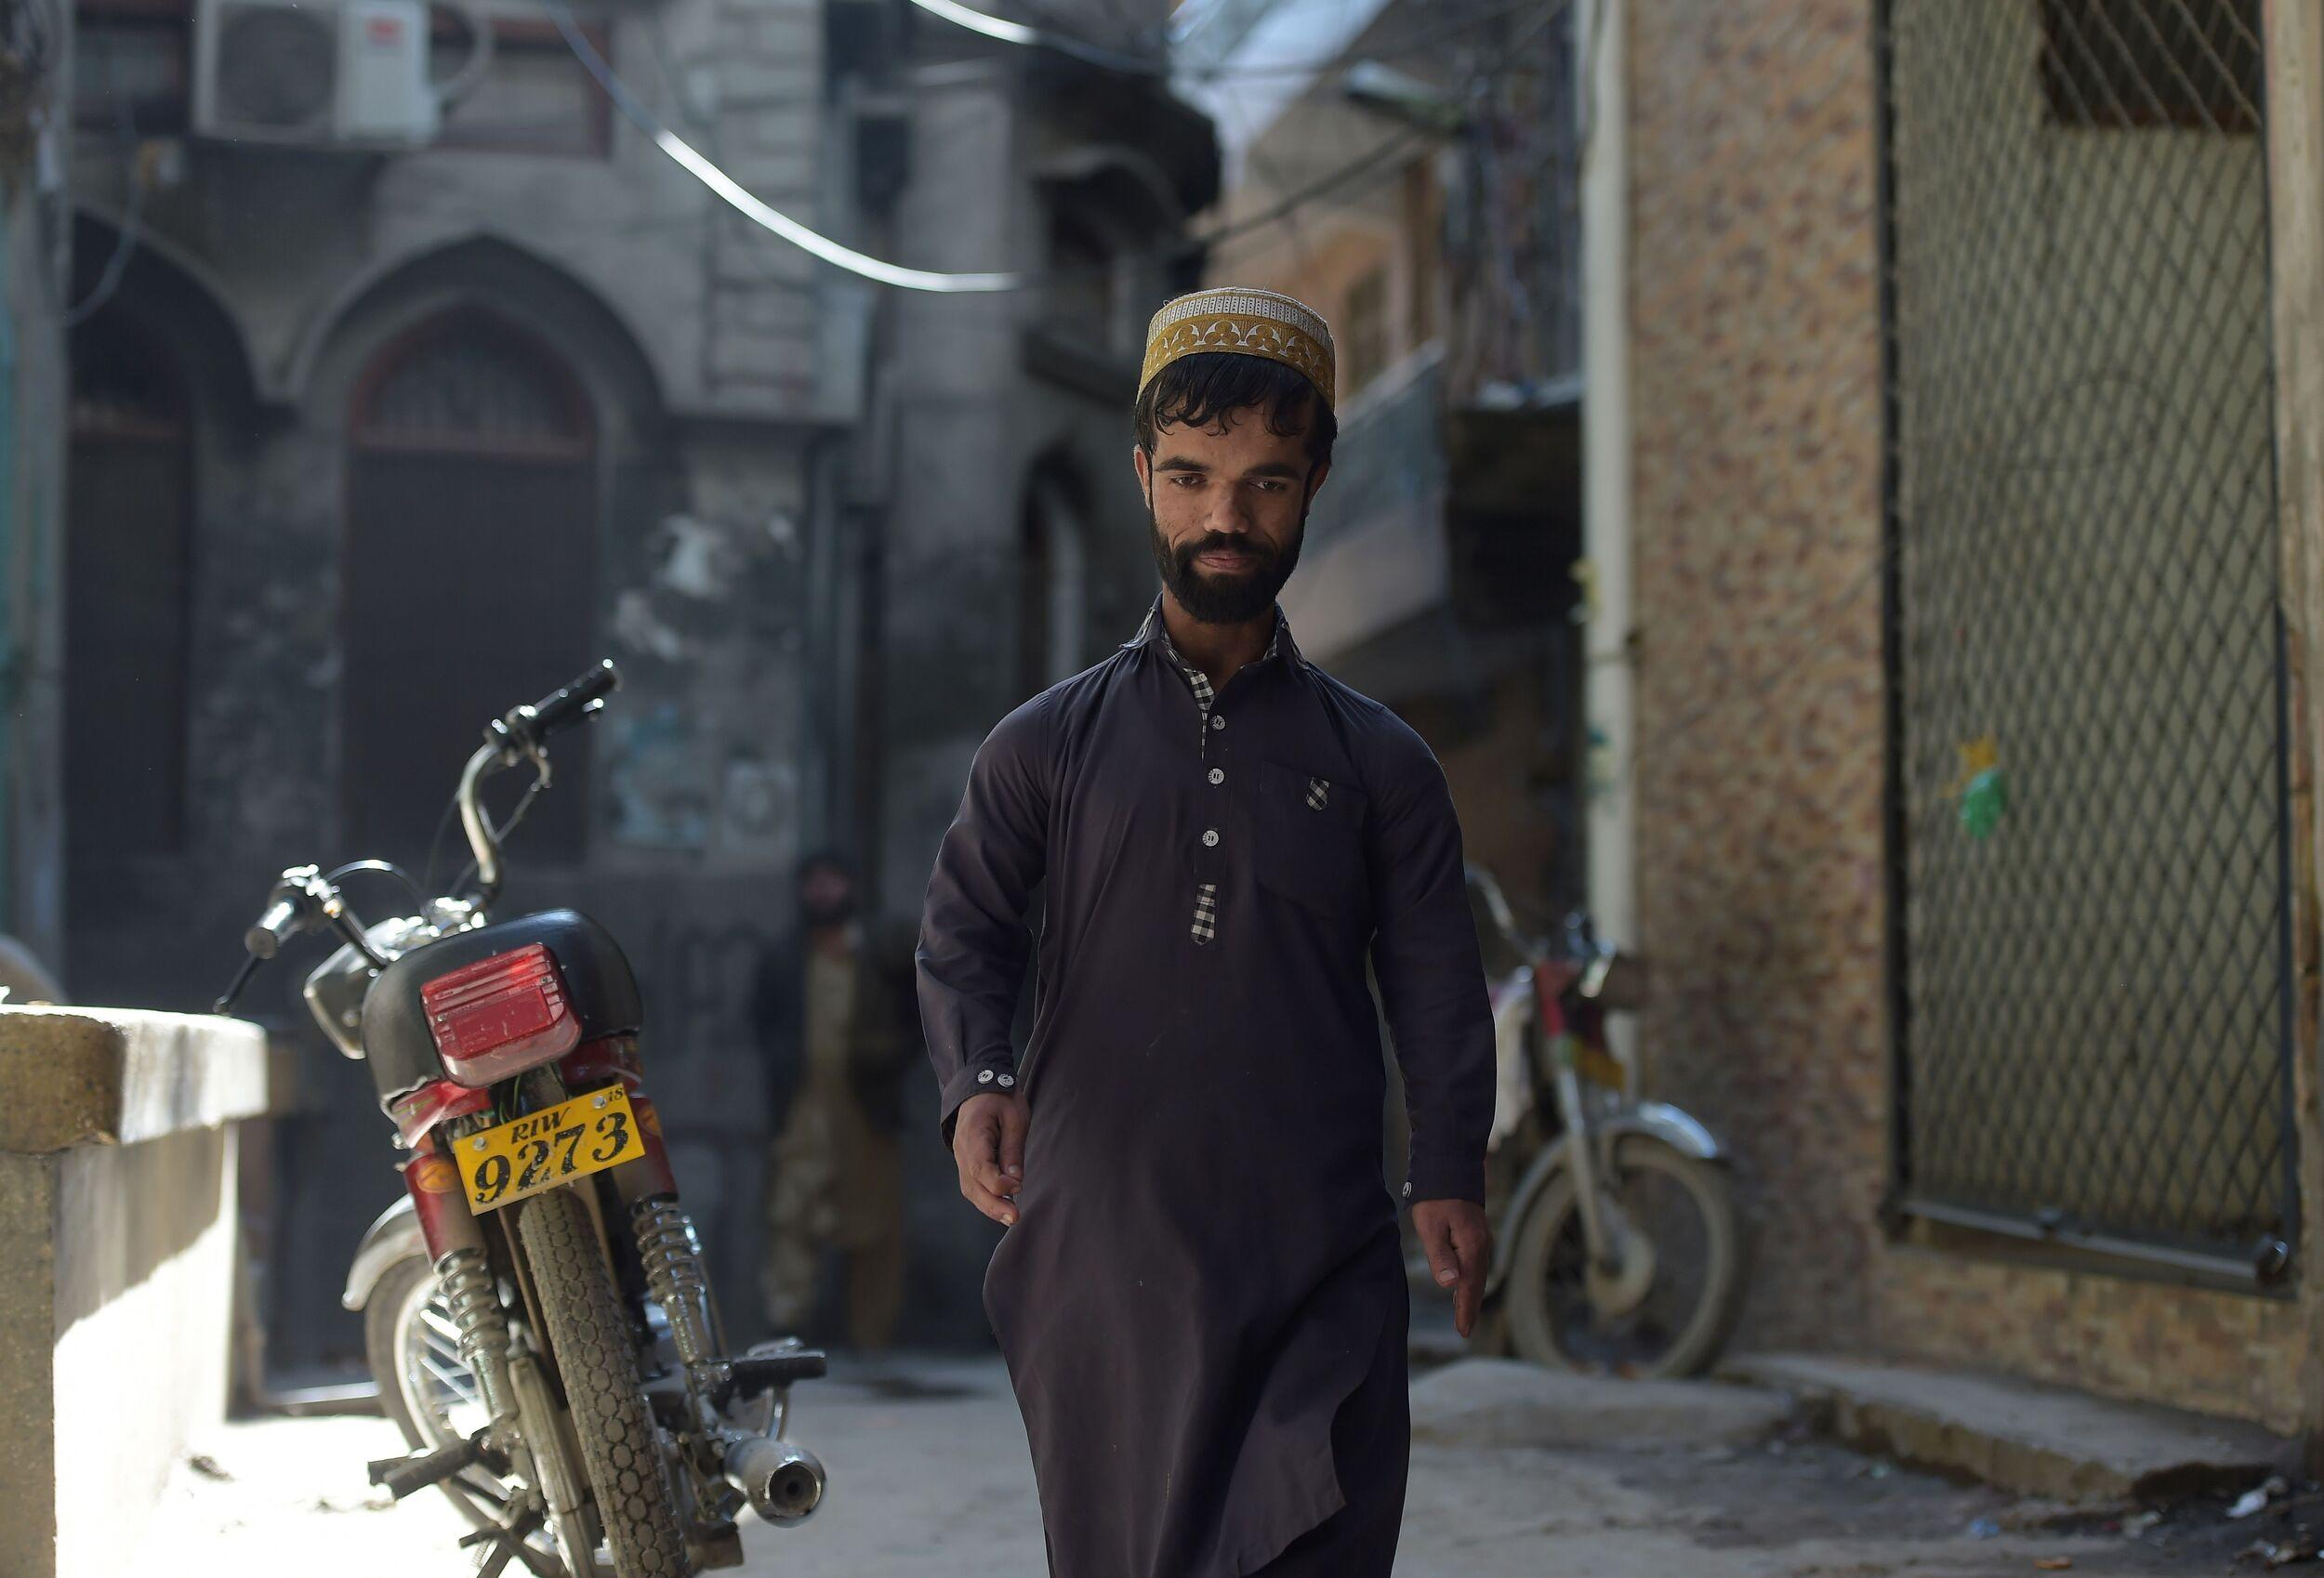 In this picture taken on February 22, 2019, Pakistani waiter Rozi Khan, 25, who resembles US actor Peter Dinklage, walks on a street in Rawalpindi. - Rozi Khan had never heard of the Game of Thrones -- or its hugely popular character Tyrion Lannister -- until his striking resemblance to the dwarf anti-hero got heads turning at home. (Photo by AAMIR QURESHI / AFP) / To go with PAKISTAN-LIFESTYLE-TELEVISION-ENTERTAINMENT        (Photo credit should read AAMIR QURESHI/AFP/Getty Images)